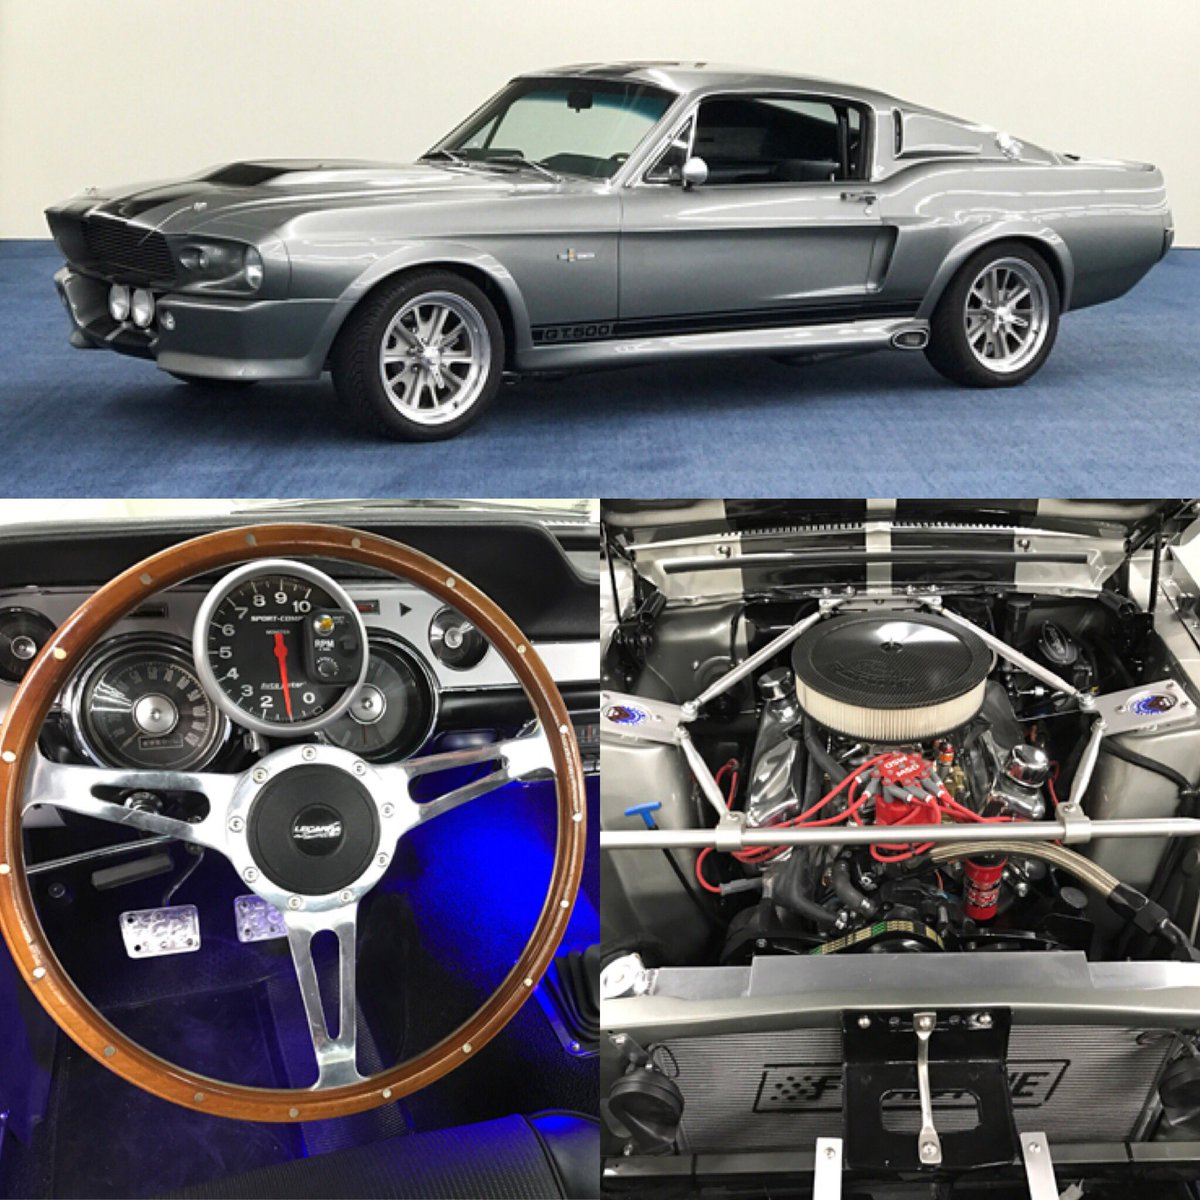 "Blackhawk Collection On Twitter: ""1967 FORD MUSTANG"